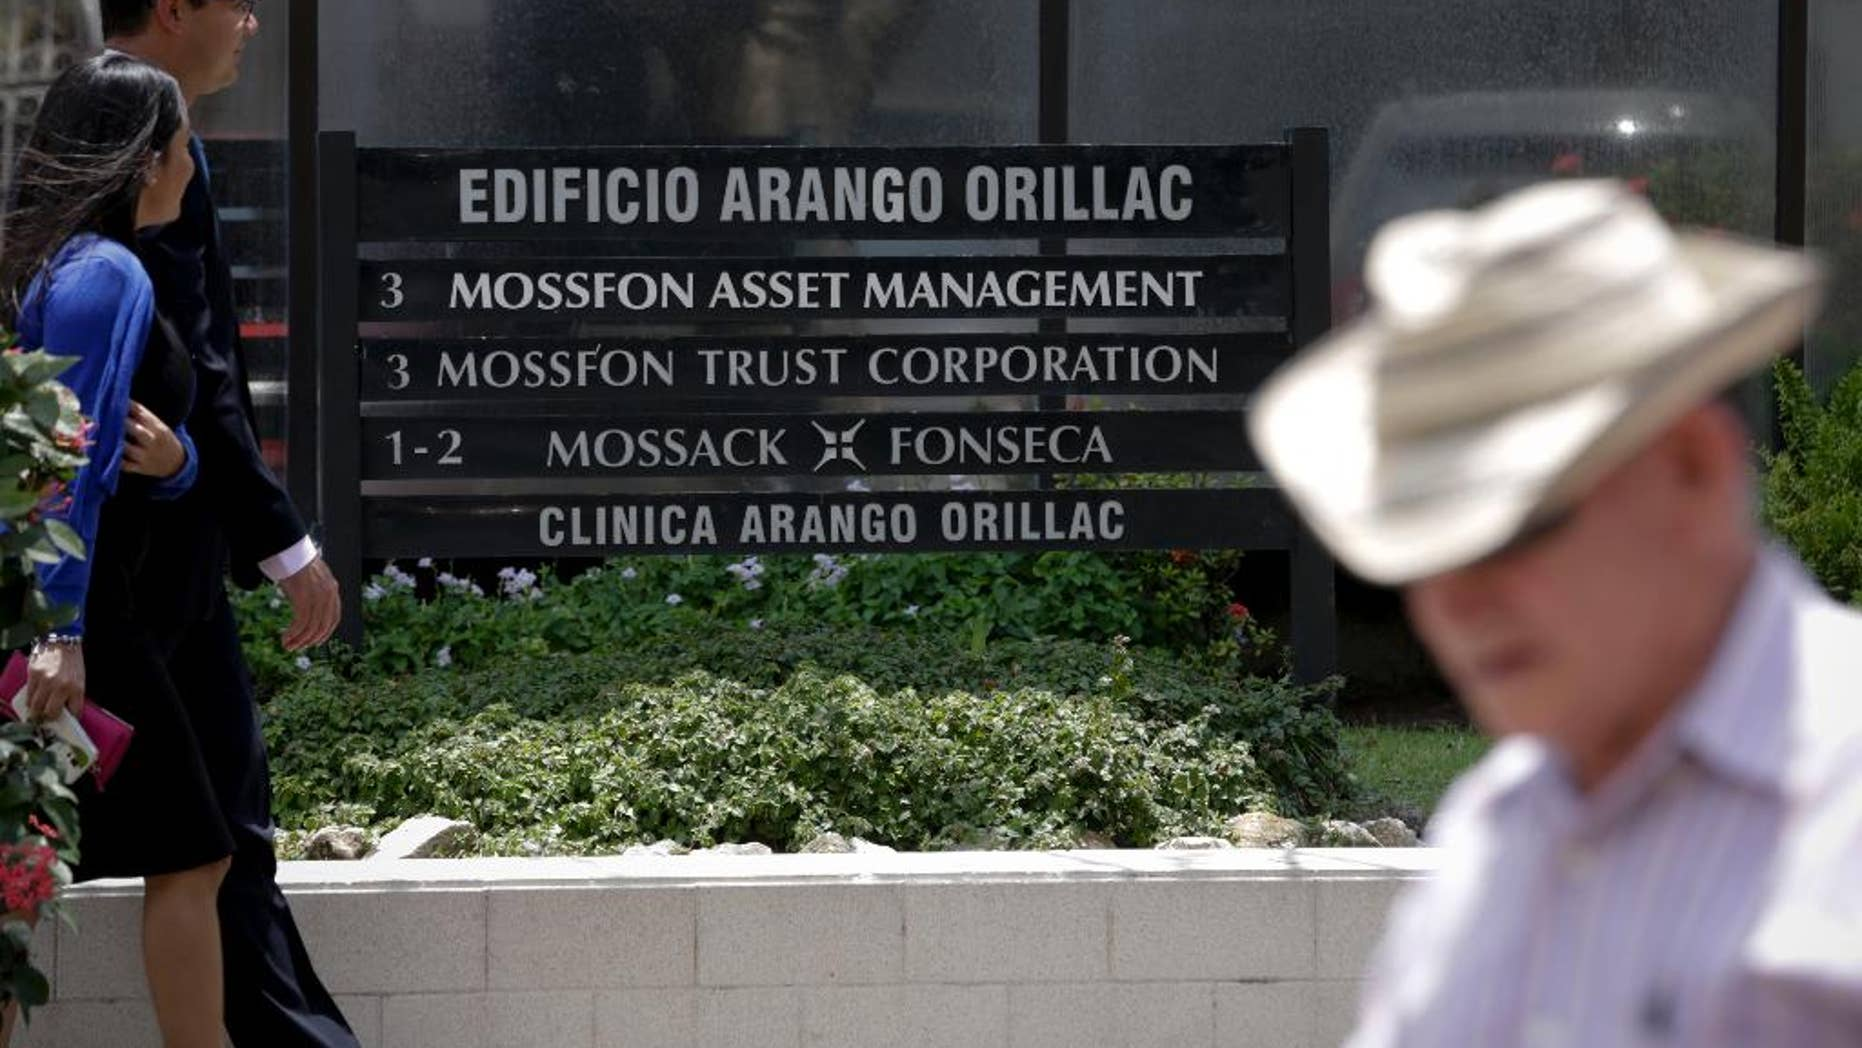 April 5, 2016: People walk past the Arango Orillac Building, which lists the Mossack Fonseca law firm as a tenant, in Panama City, Panama.